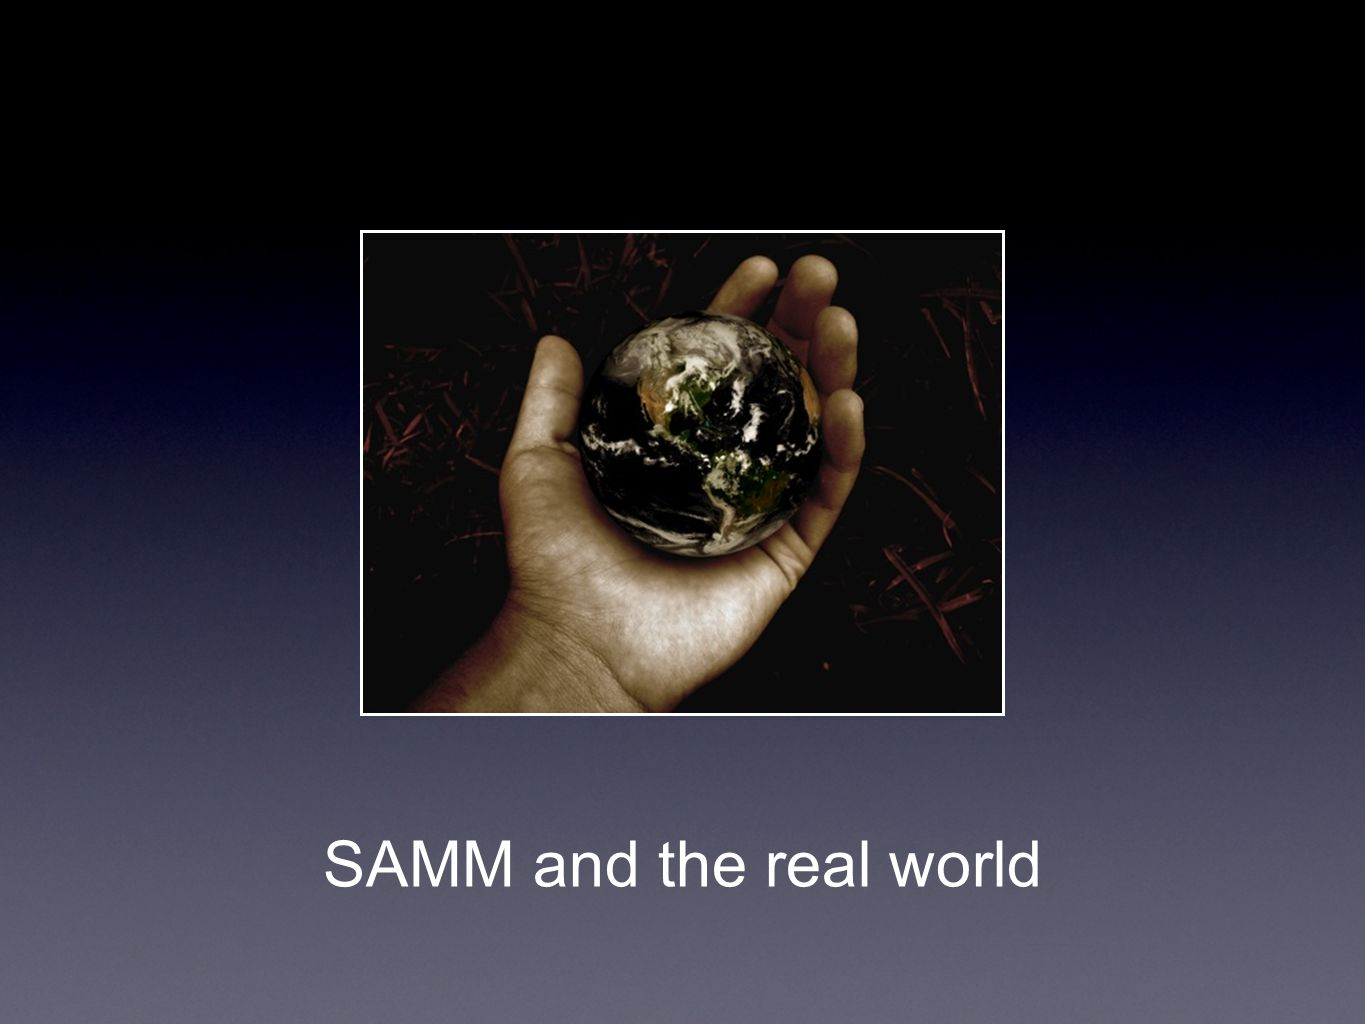 SAMM and the real world